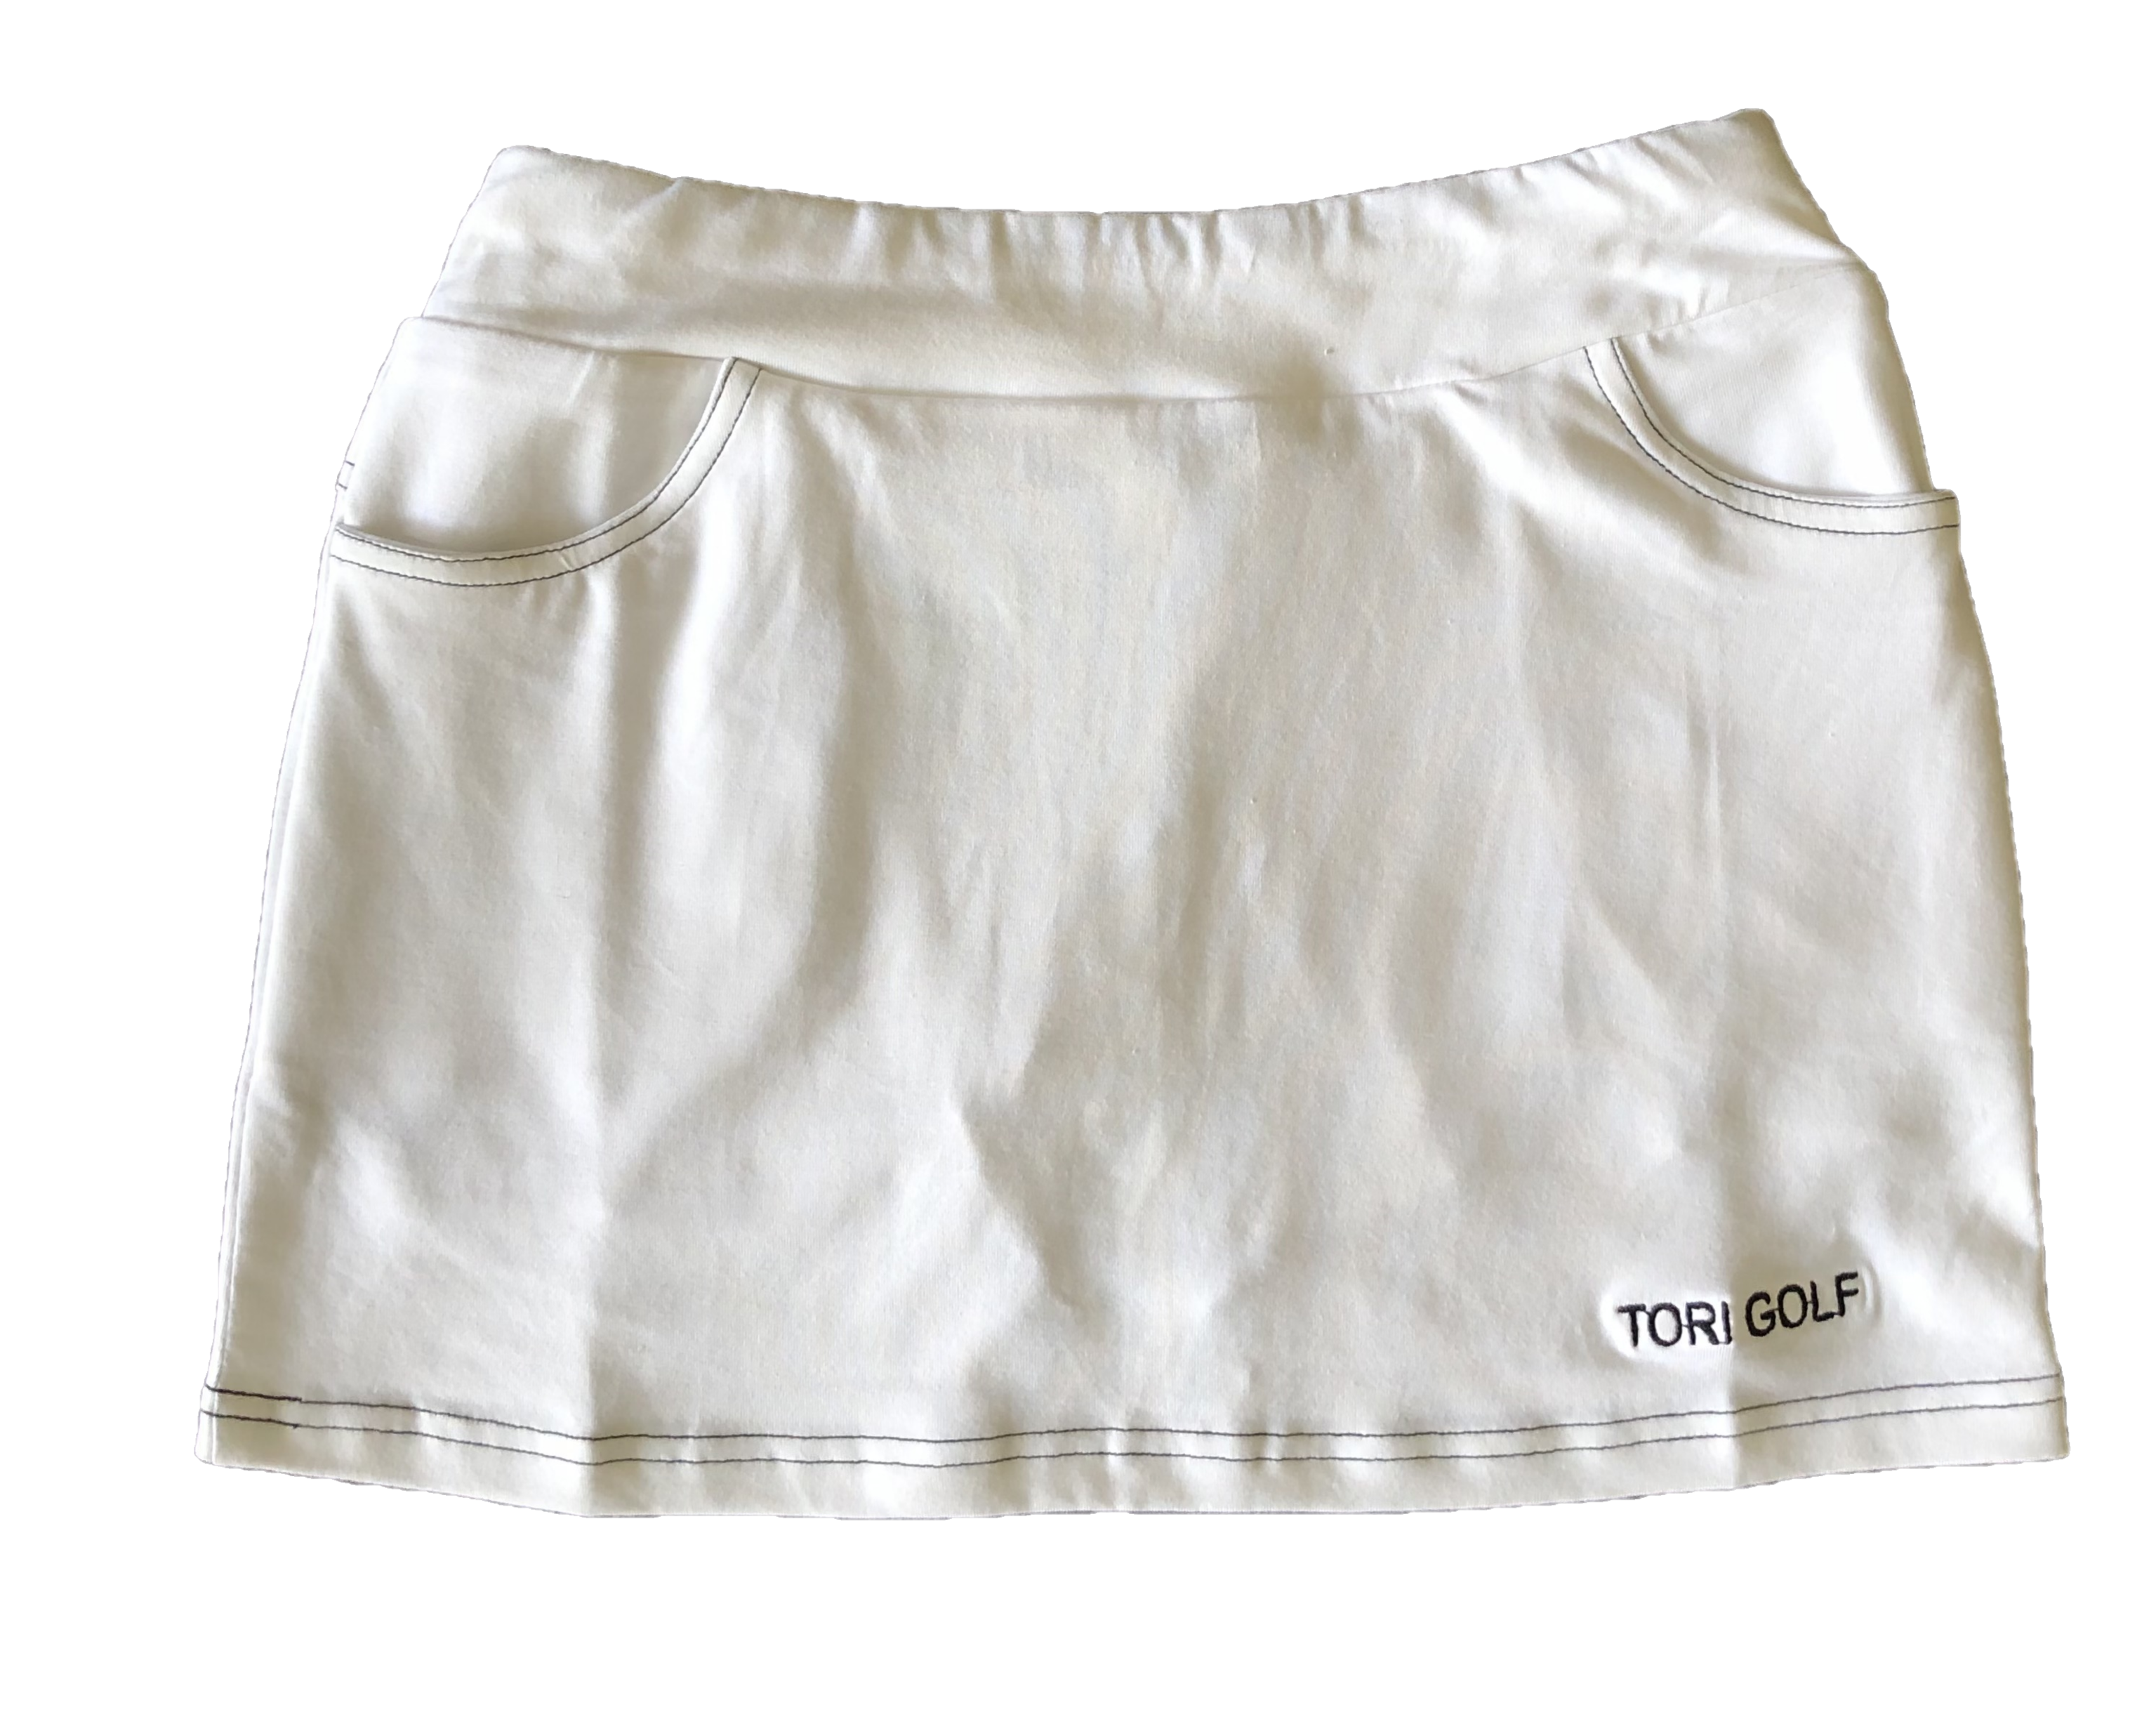 LS-061A    Skirt White 2 Front & 2 Rear Pockets With Black Stiching